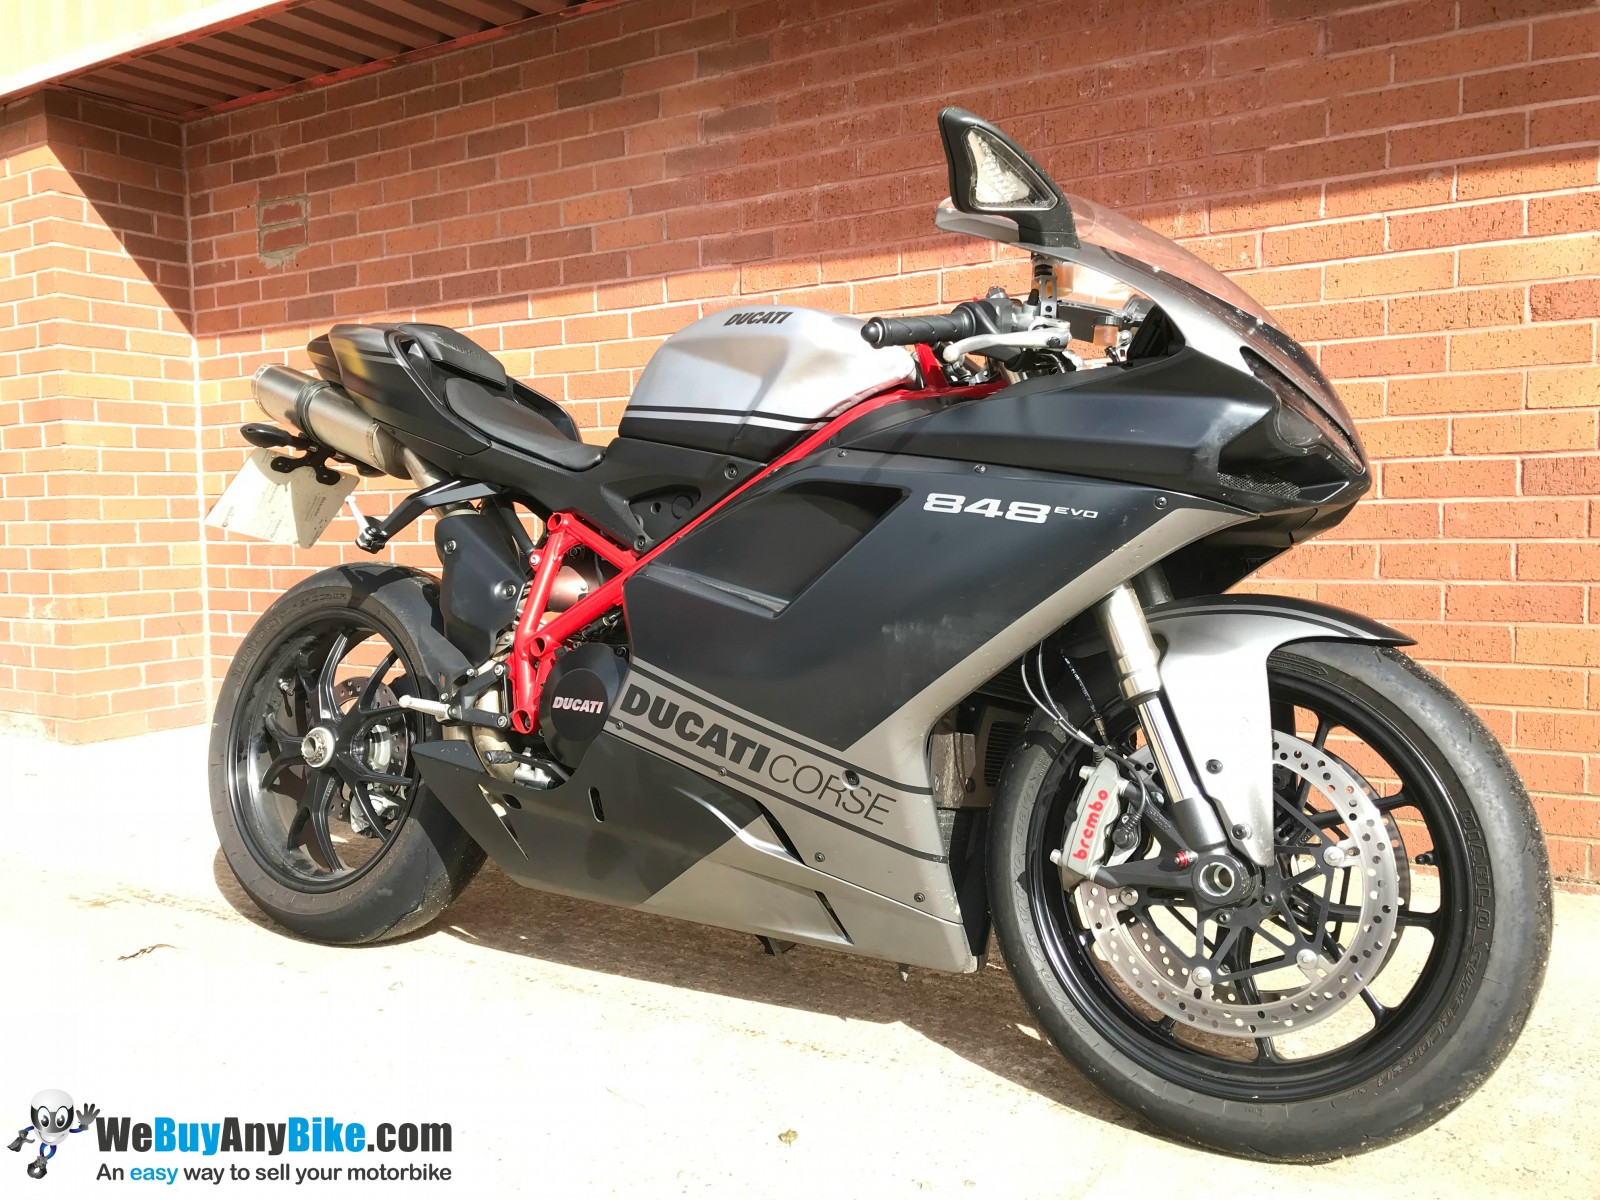 sell my bike - webuyanybike - sell motorbike - we buy any bike - buy my bike - motorcycle valuation - biketrader - motorbike trader - motorbiketrader - sell my motorbike for cash - sell my motorcycle